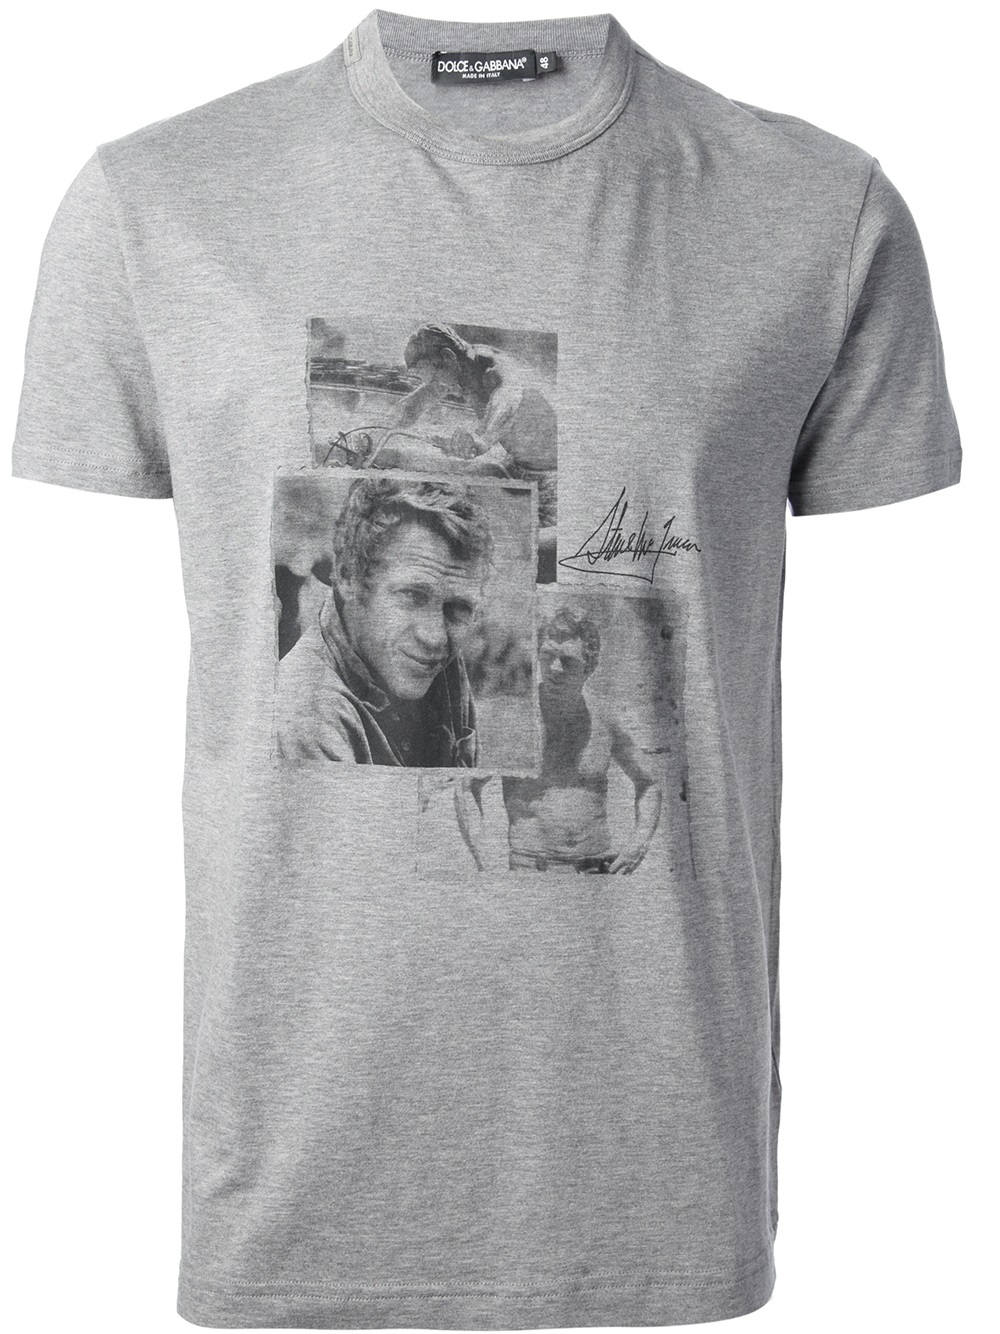 dolce gabbana steve mcqueen tshirt in gray for men lyst. Black Bedroom Furniture Sets. Home Design Ideas